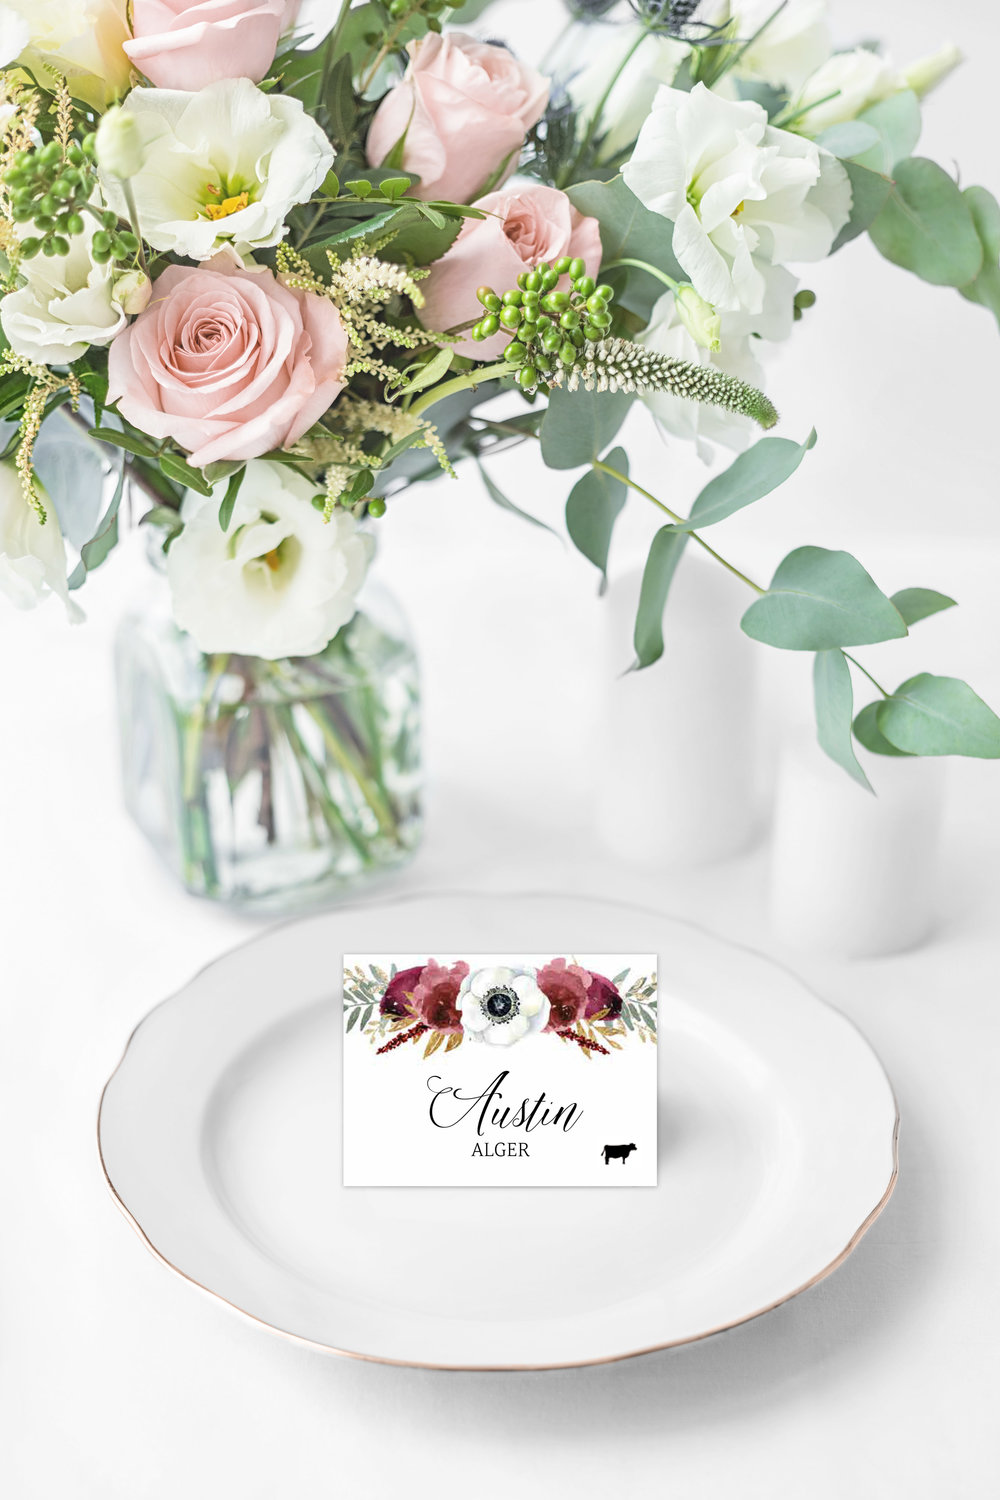 These folded place cards feature the guests' name, along with a meal indicator.